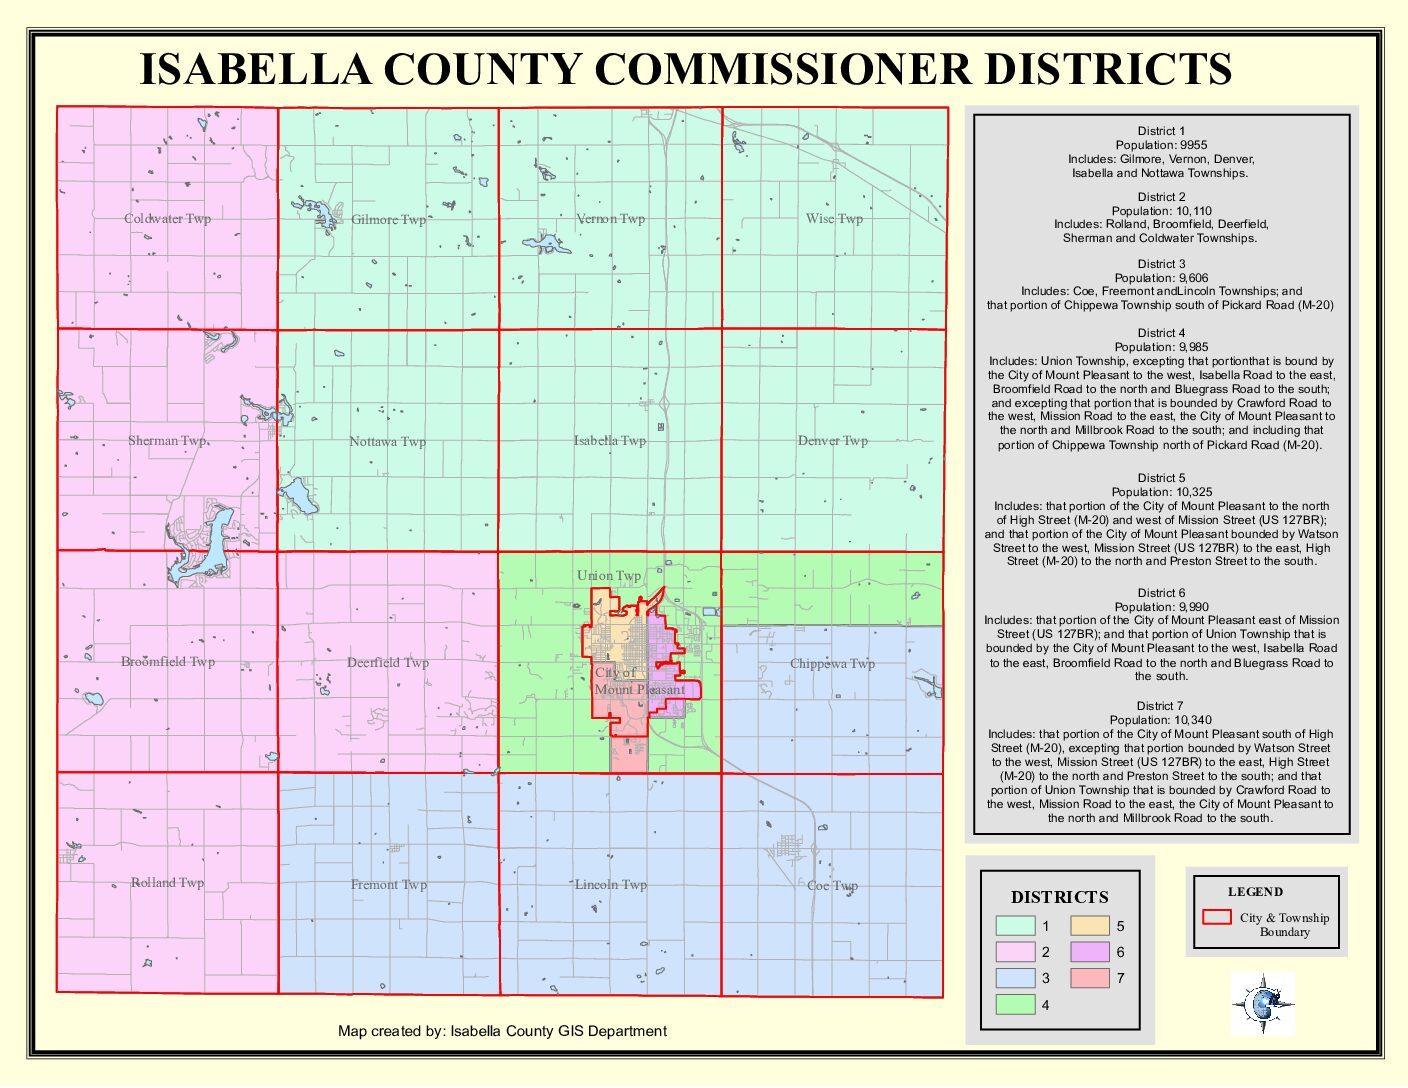 preview image of first page Commissioner Districts